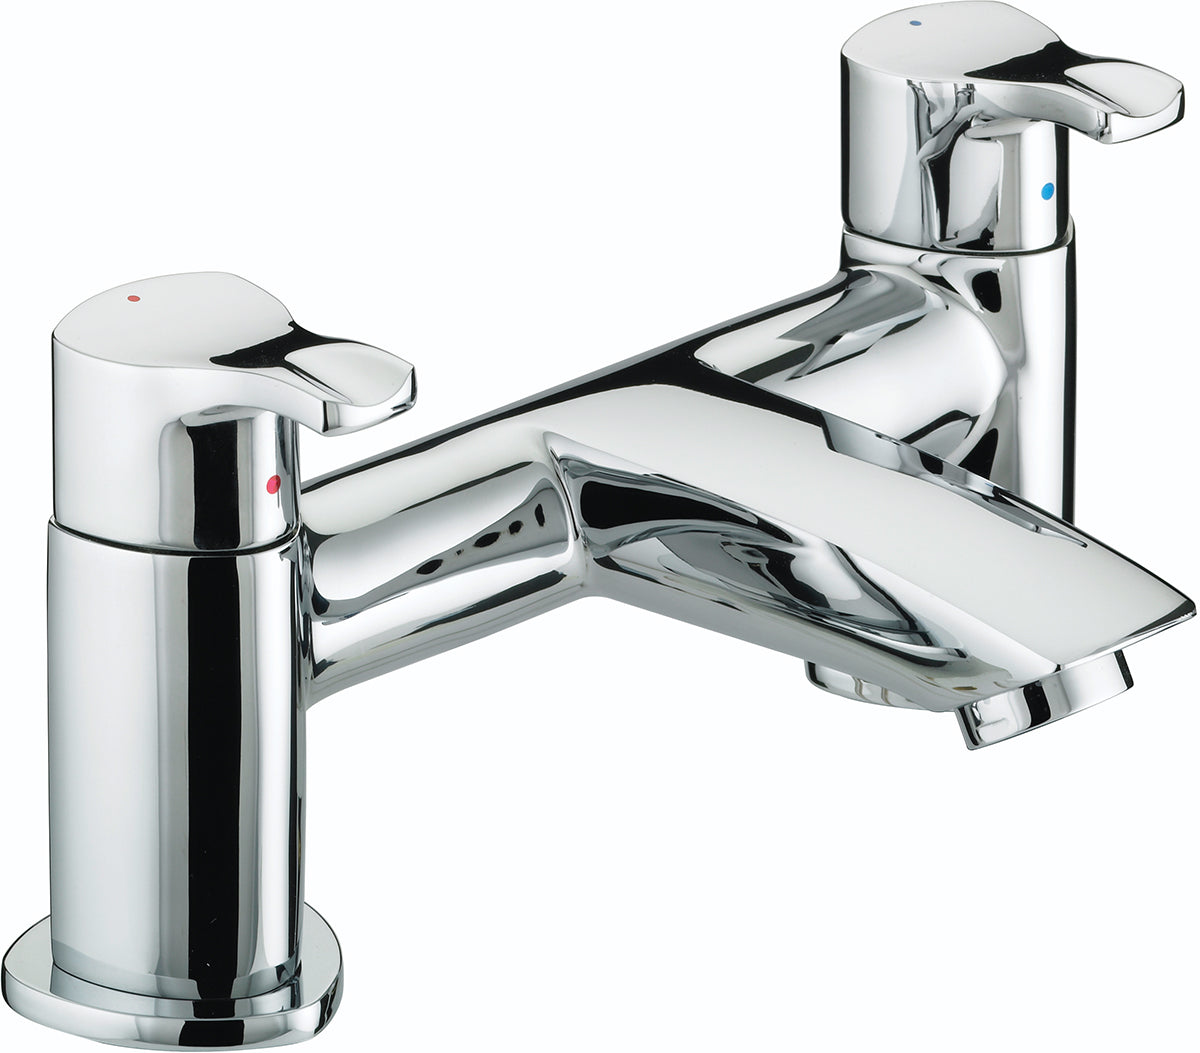 Bristan CAP BF C Capri Pillar Bath Filler - Chrome